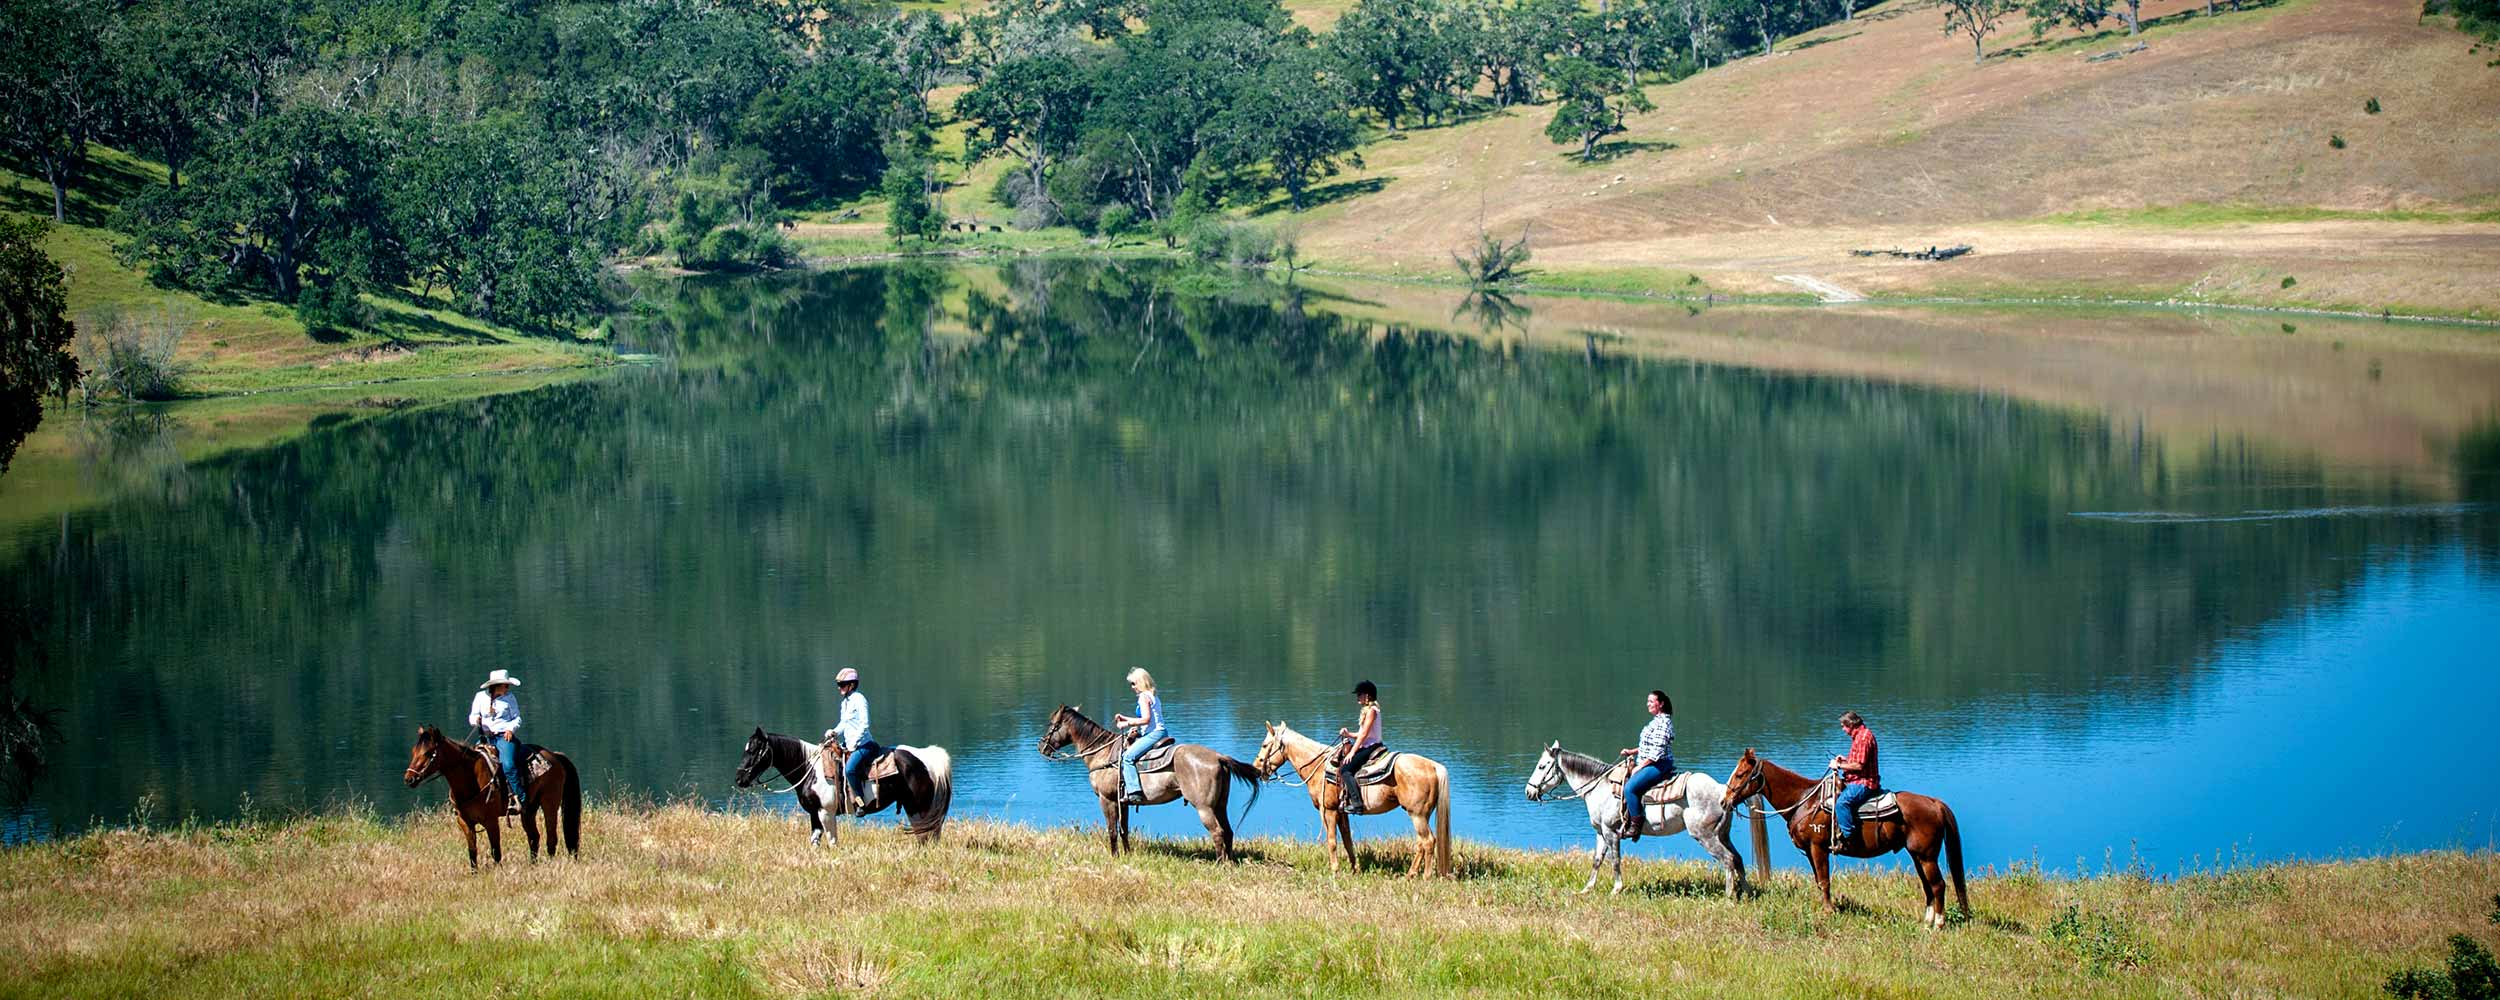 horseback riding around Alisal Lake - Alisal Resort in Solvang California